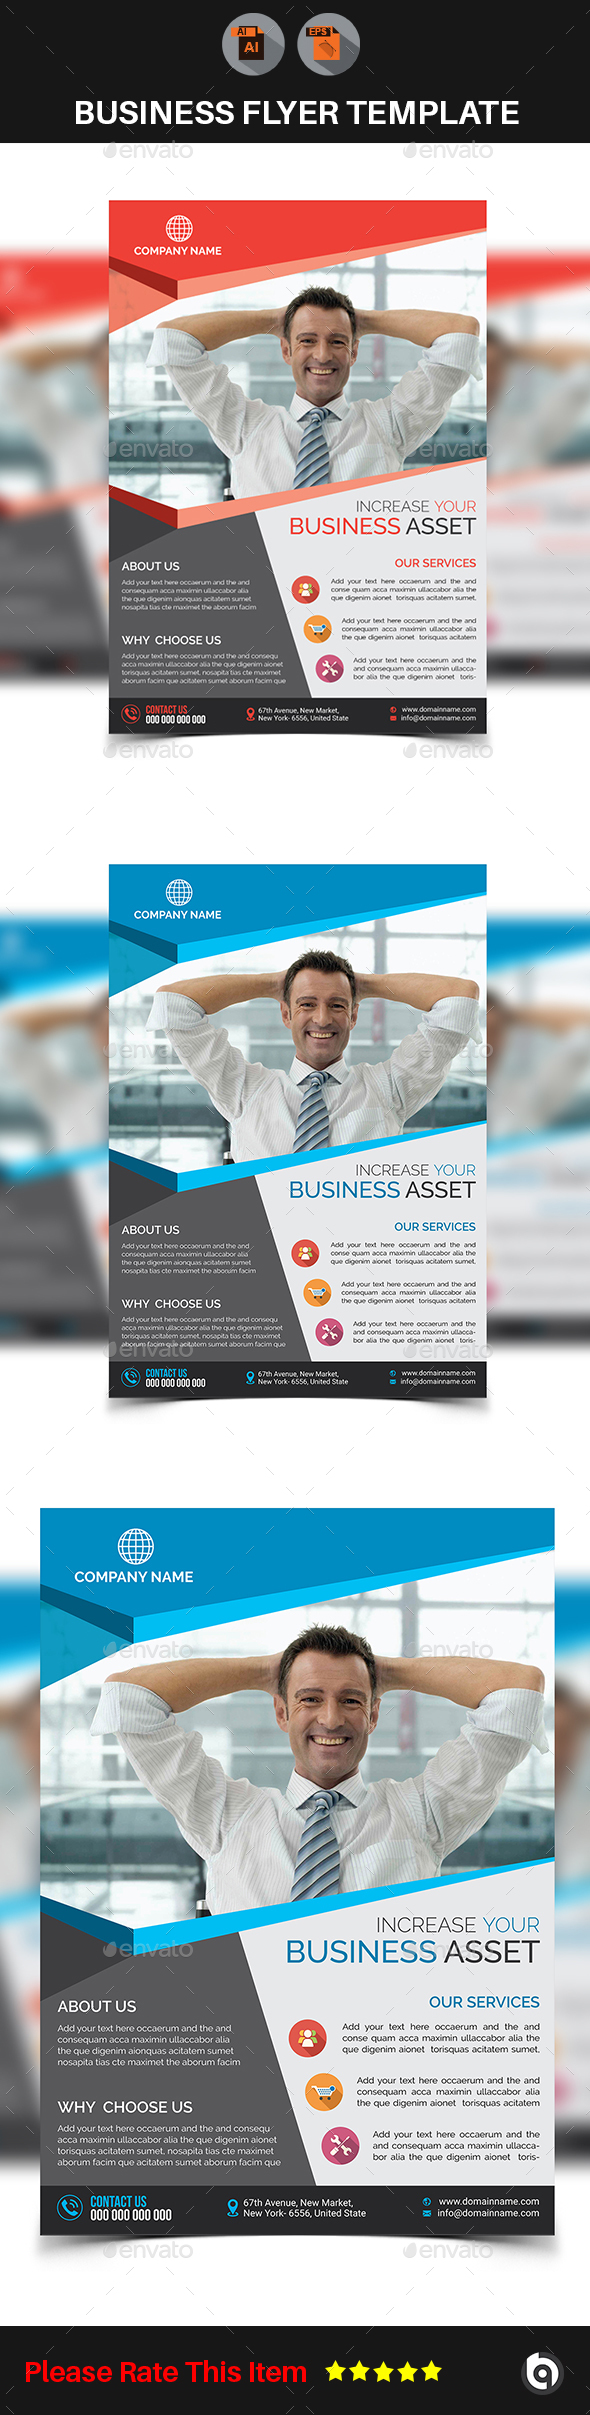 Business Flyer Template V2 - Corporate Flyers